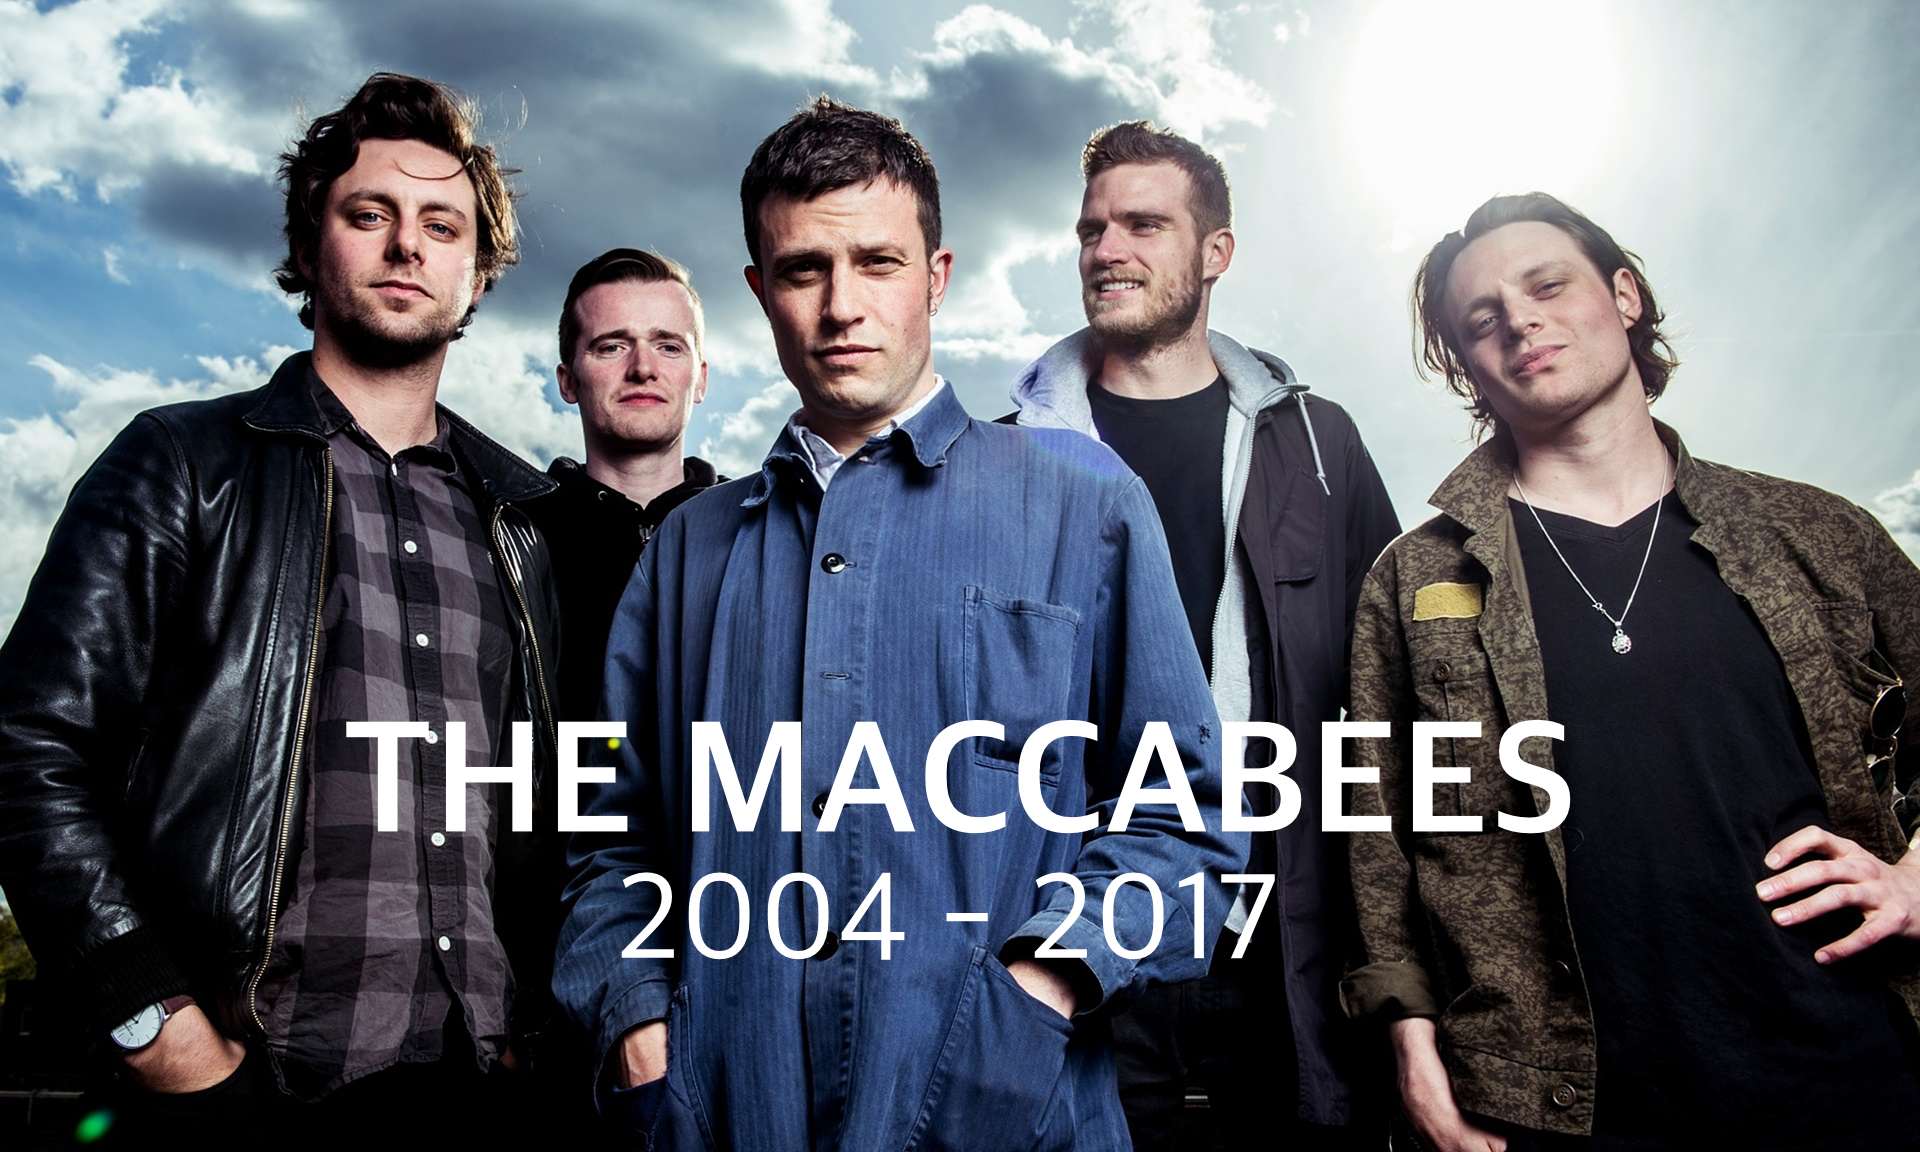 Bands we've lost in 2017: The Maccabees